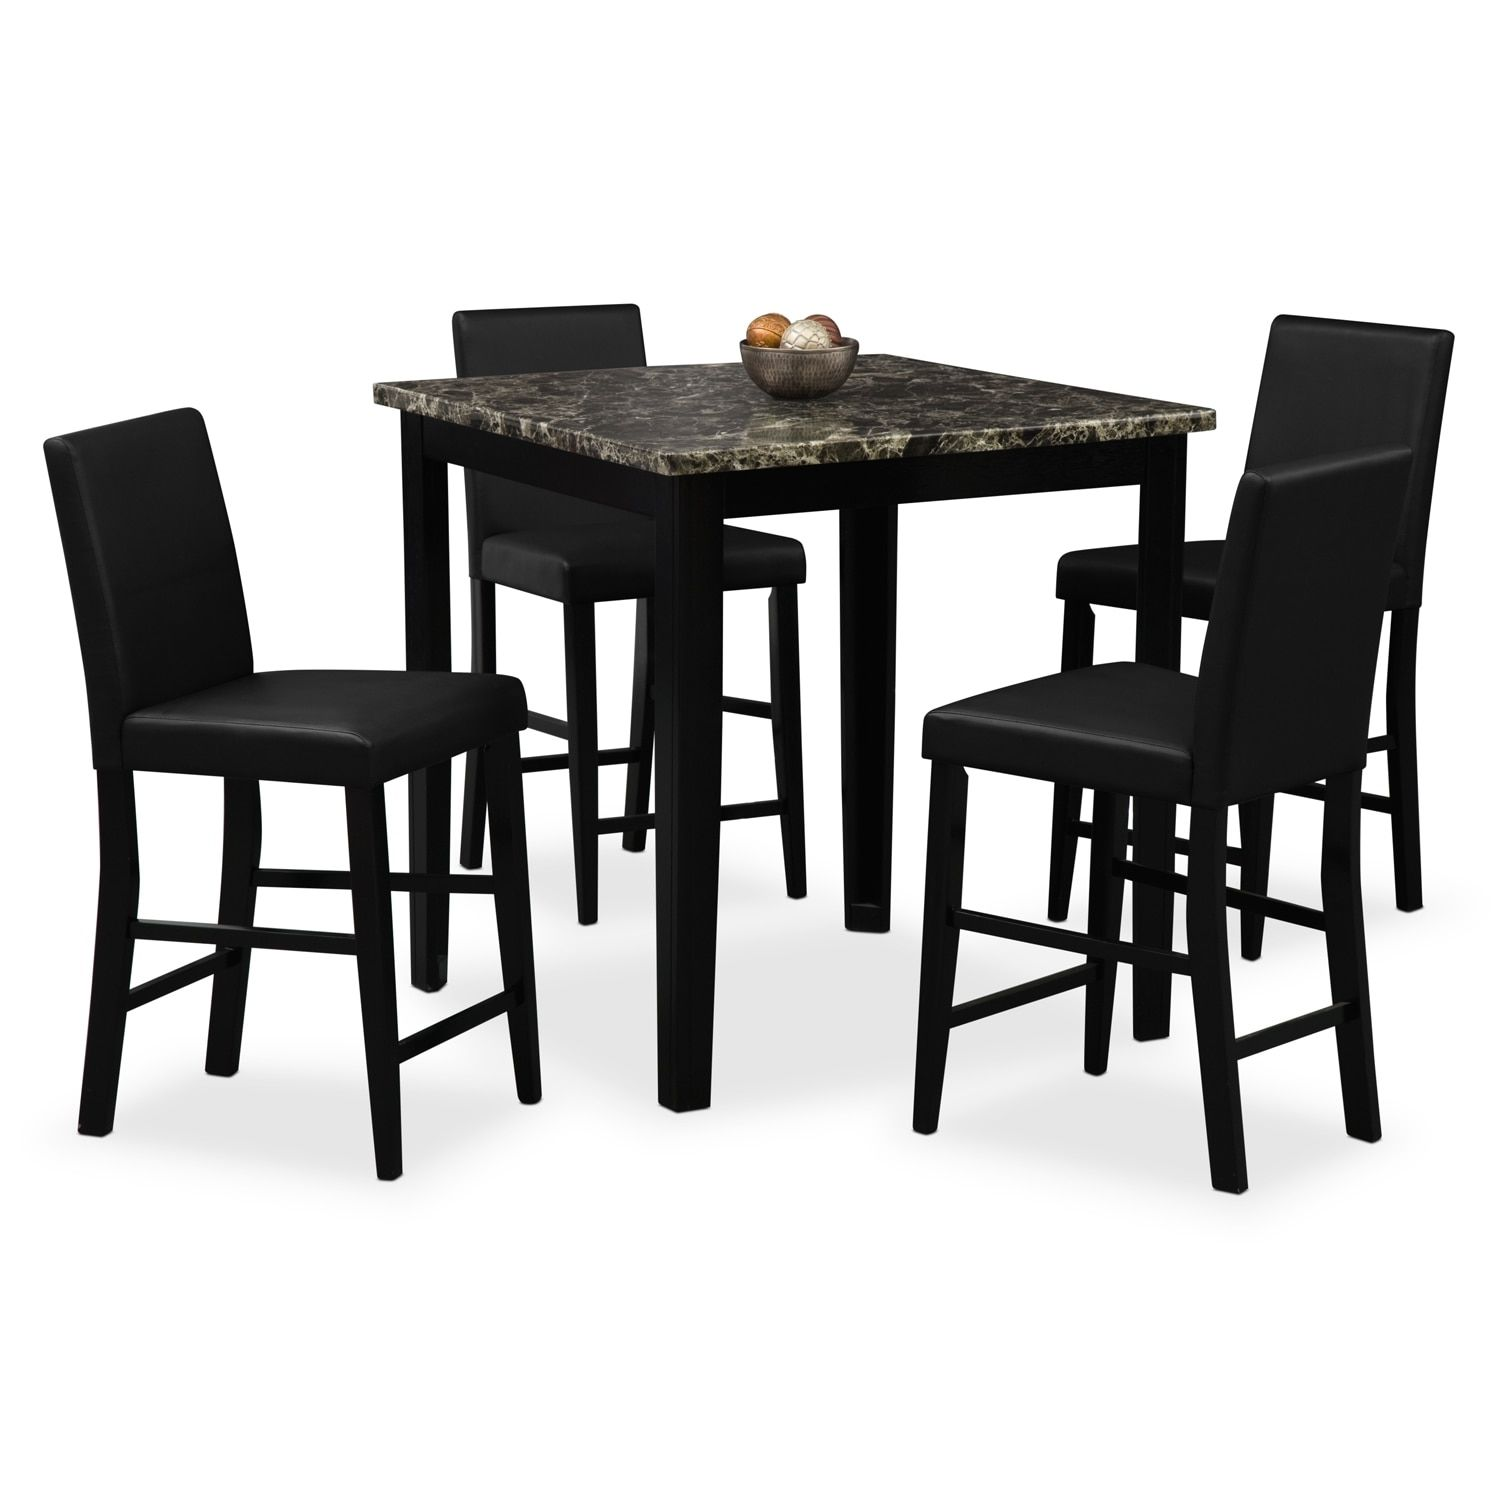 fd49bfcde5e2e Shadow Counter-Height Table And 4 Chairs - Black